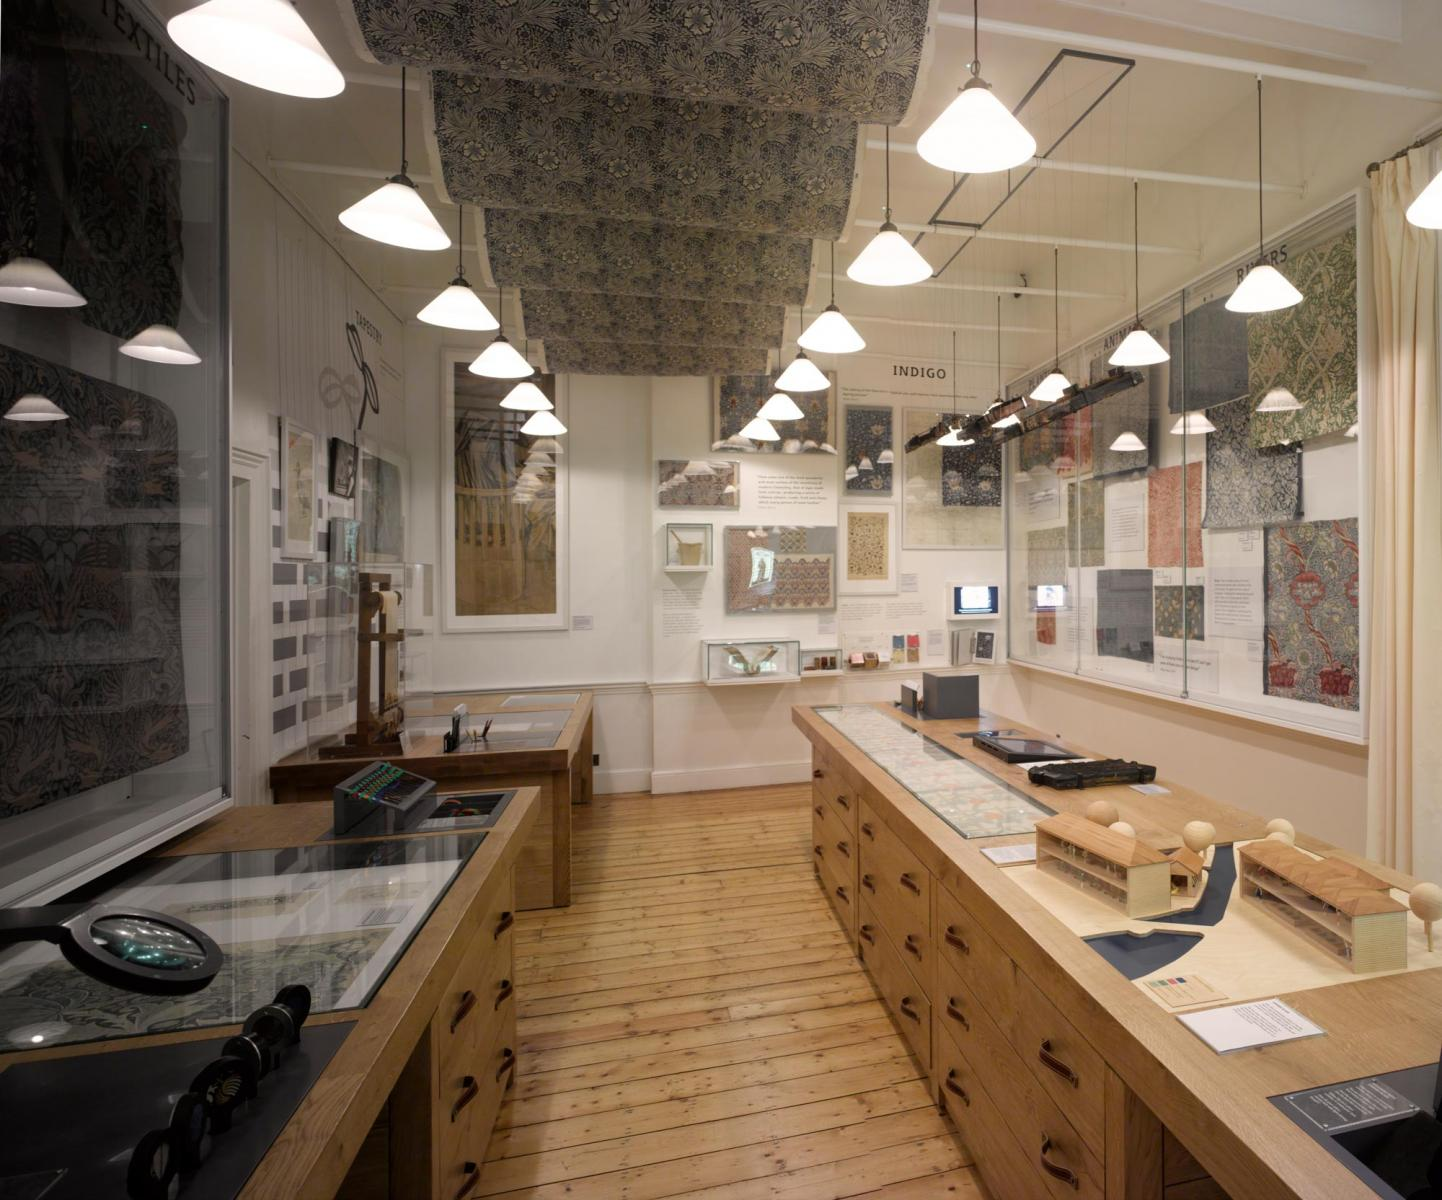 William Morris Gallery, Walthamstow, London - Workshop Gallery